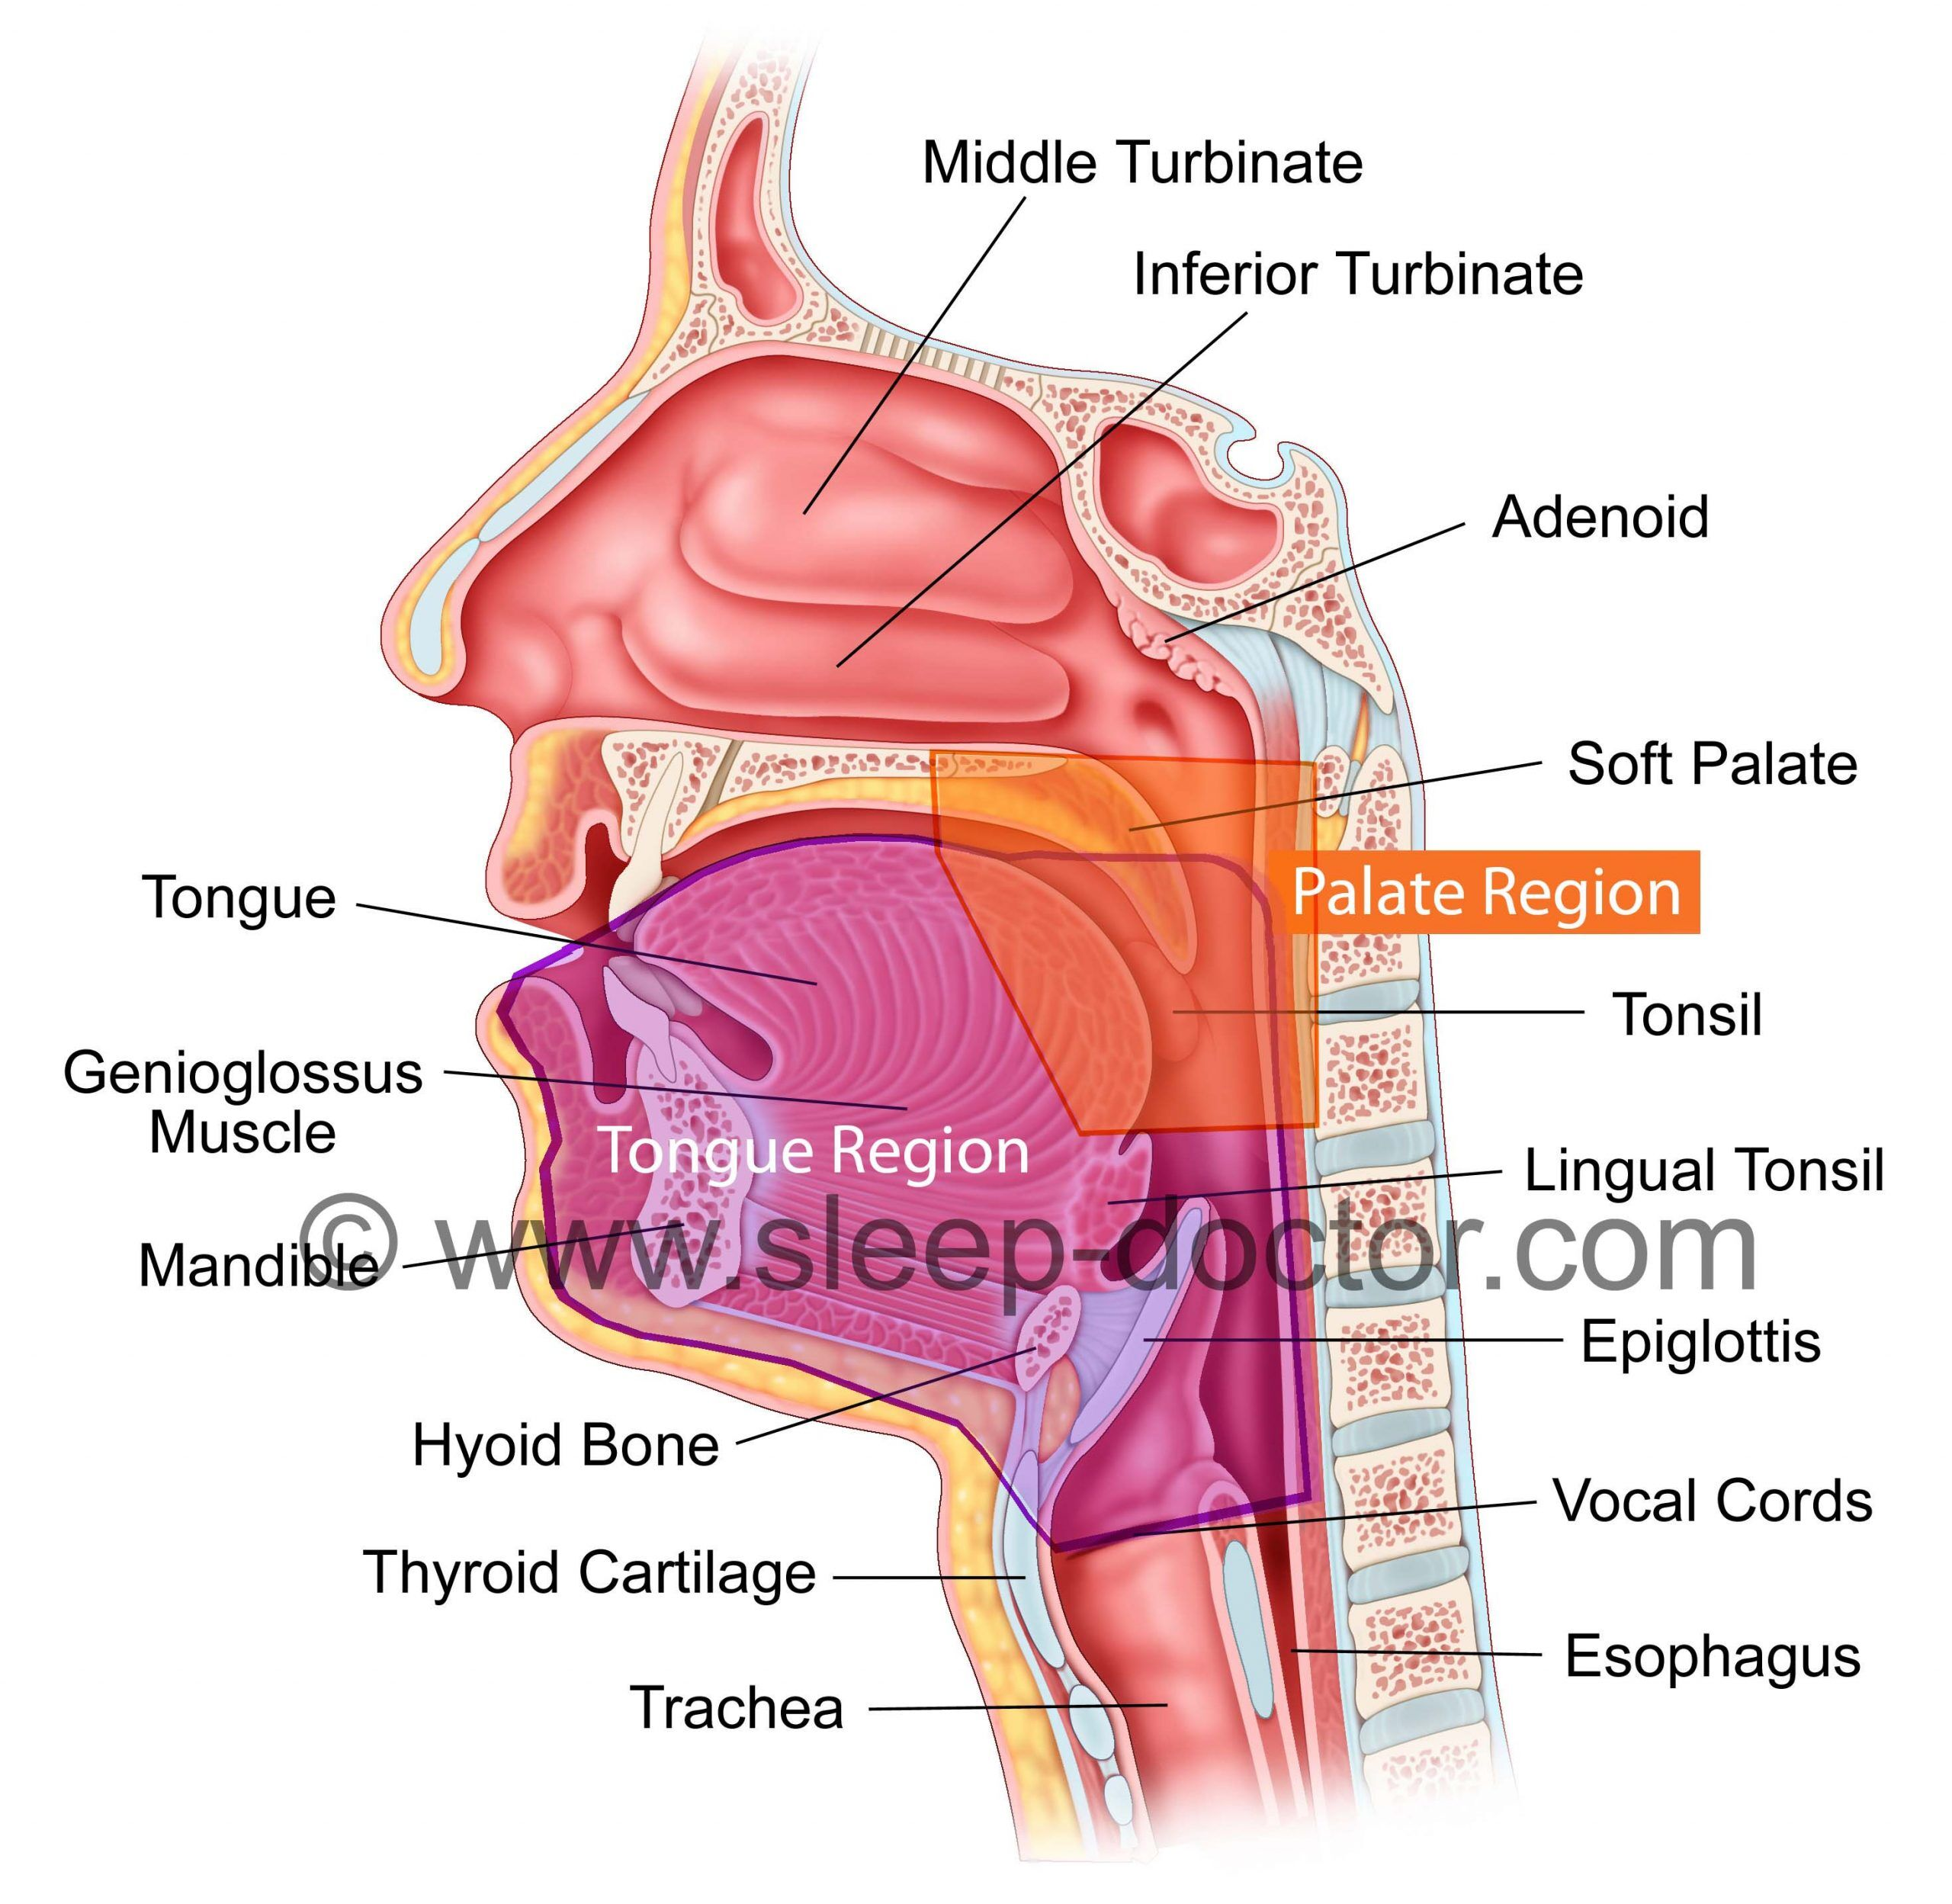 drug-induced sleep endoscopy snoring sleep apnea throat anatomy image